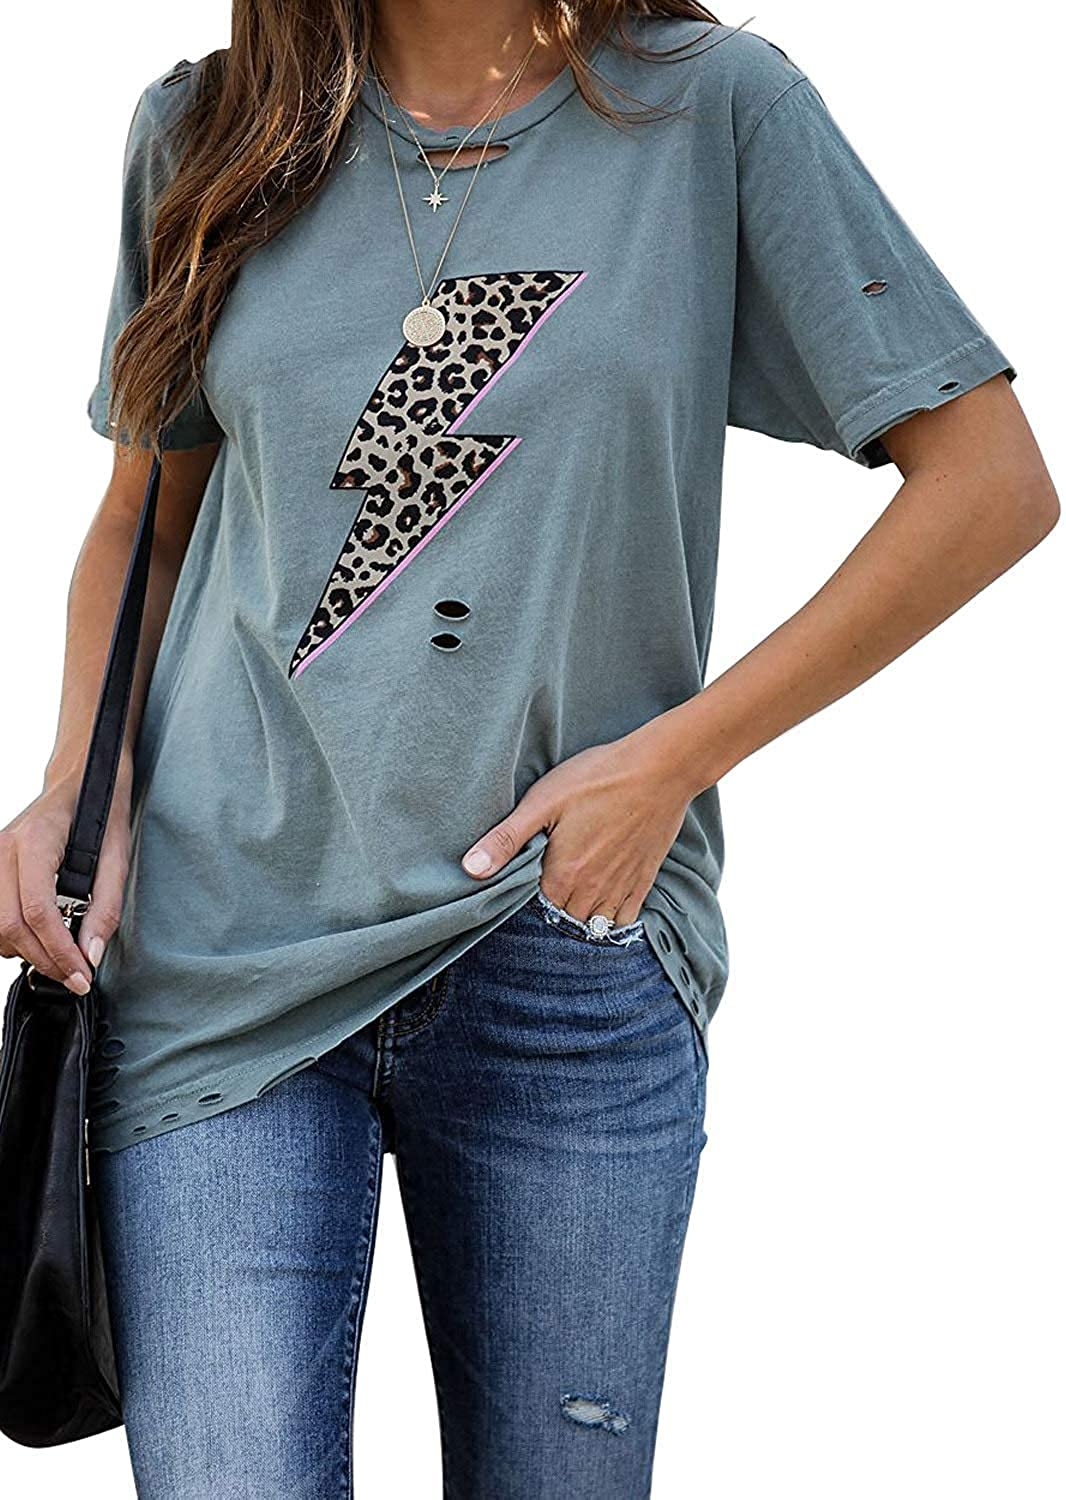 Uusollecy Womens Summer Tshirts Crewneck Short Sleeve Graphic Tee Shirts Loose Fit Ins Style Tees and Tops